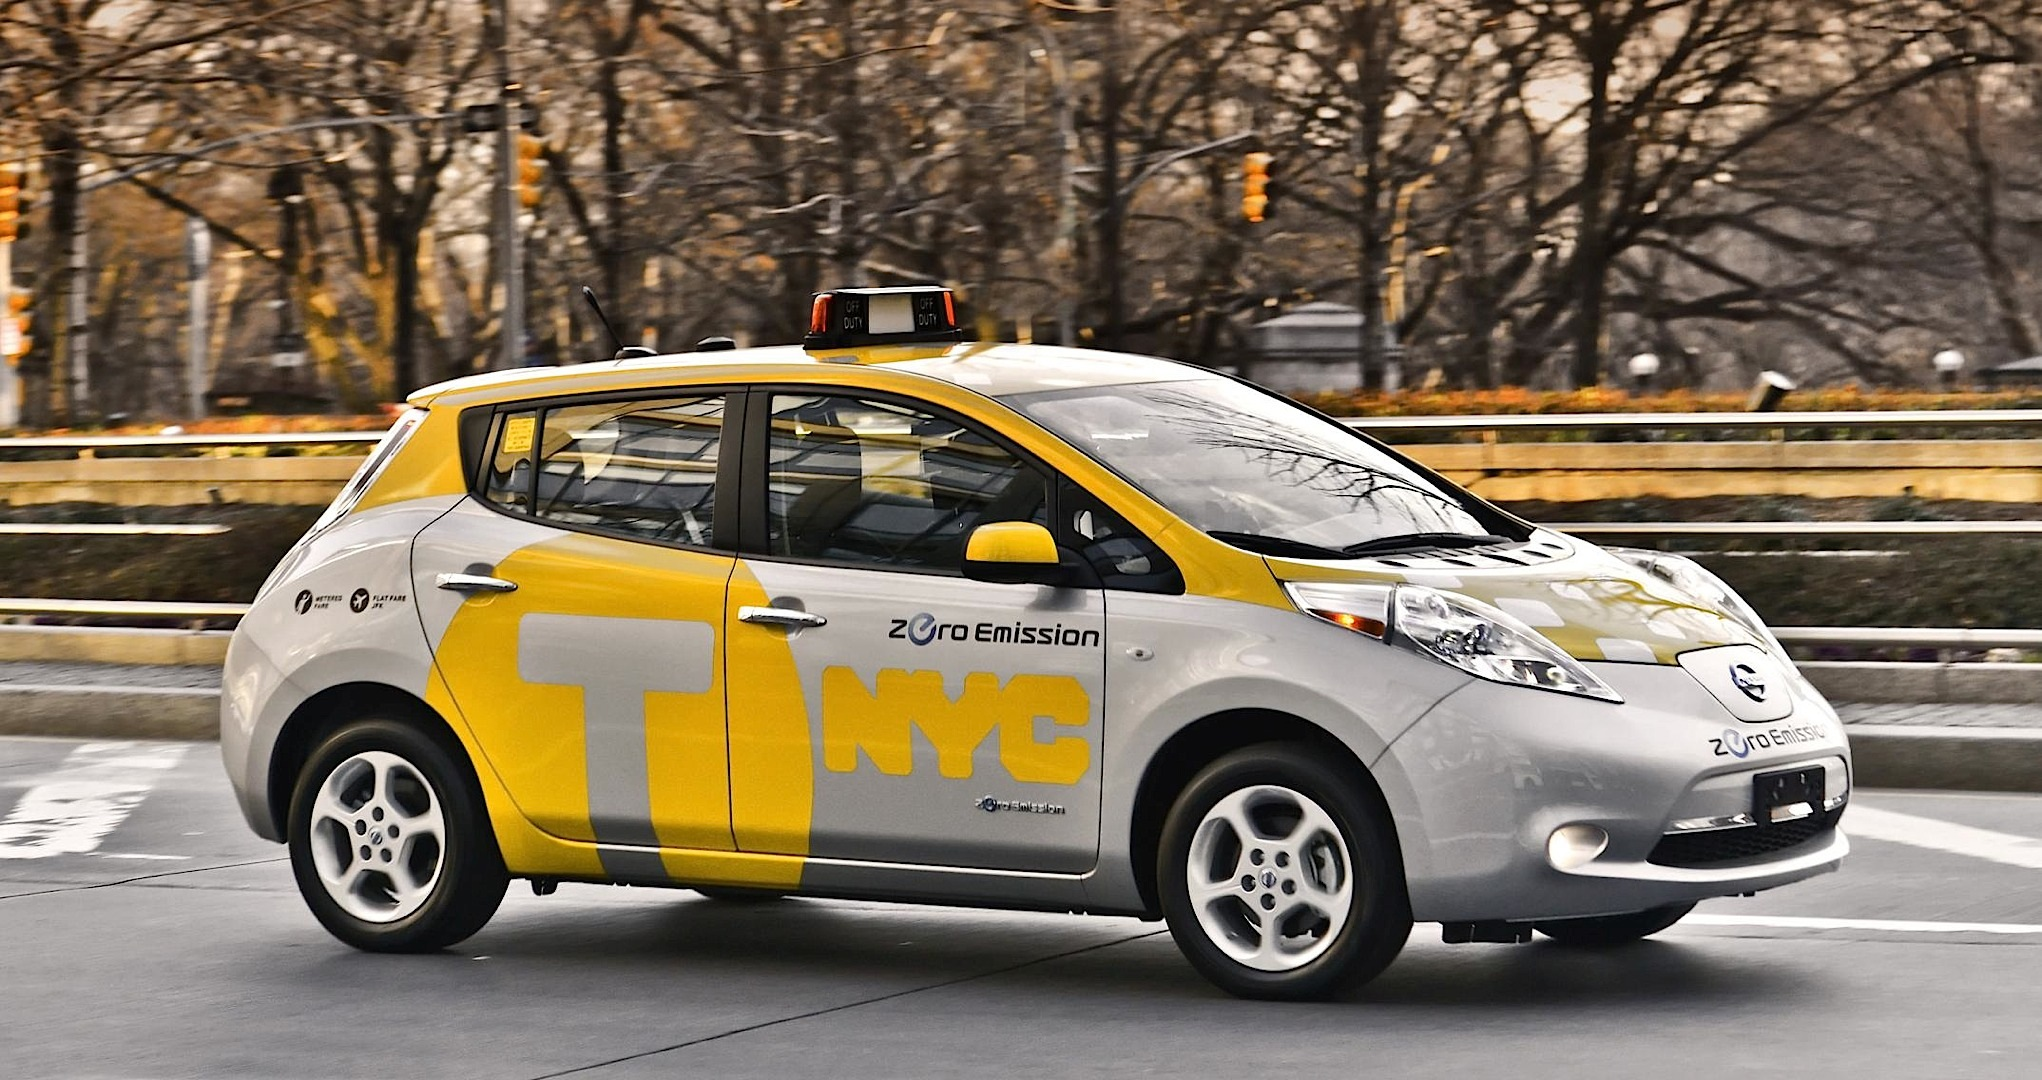 nissan-leaf-evs-enter-electric-vehicle-taxi-trials-video-photo-gallery_3.jpg